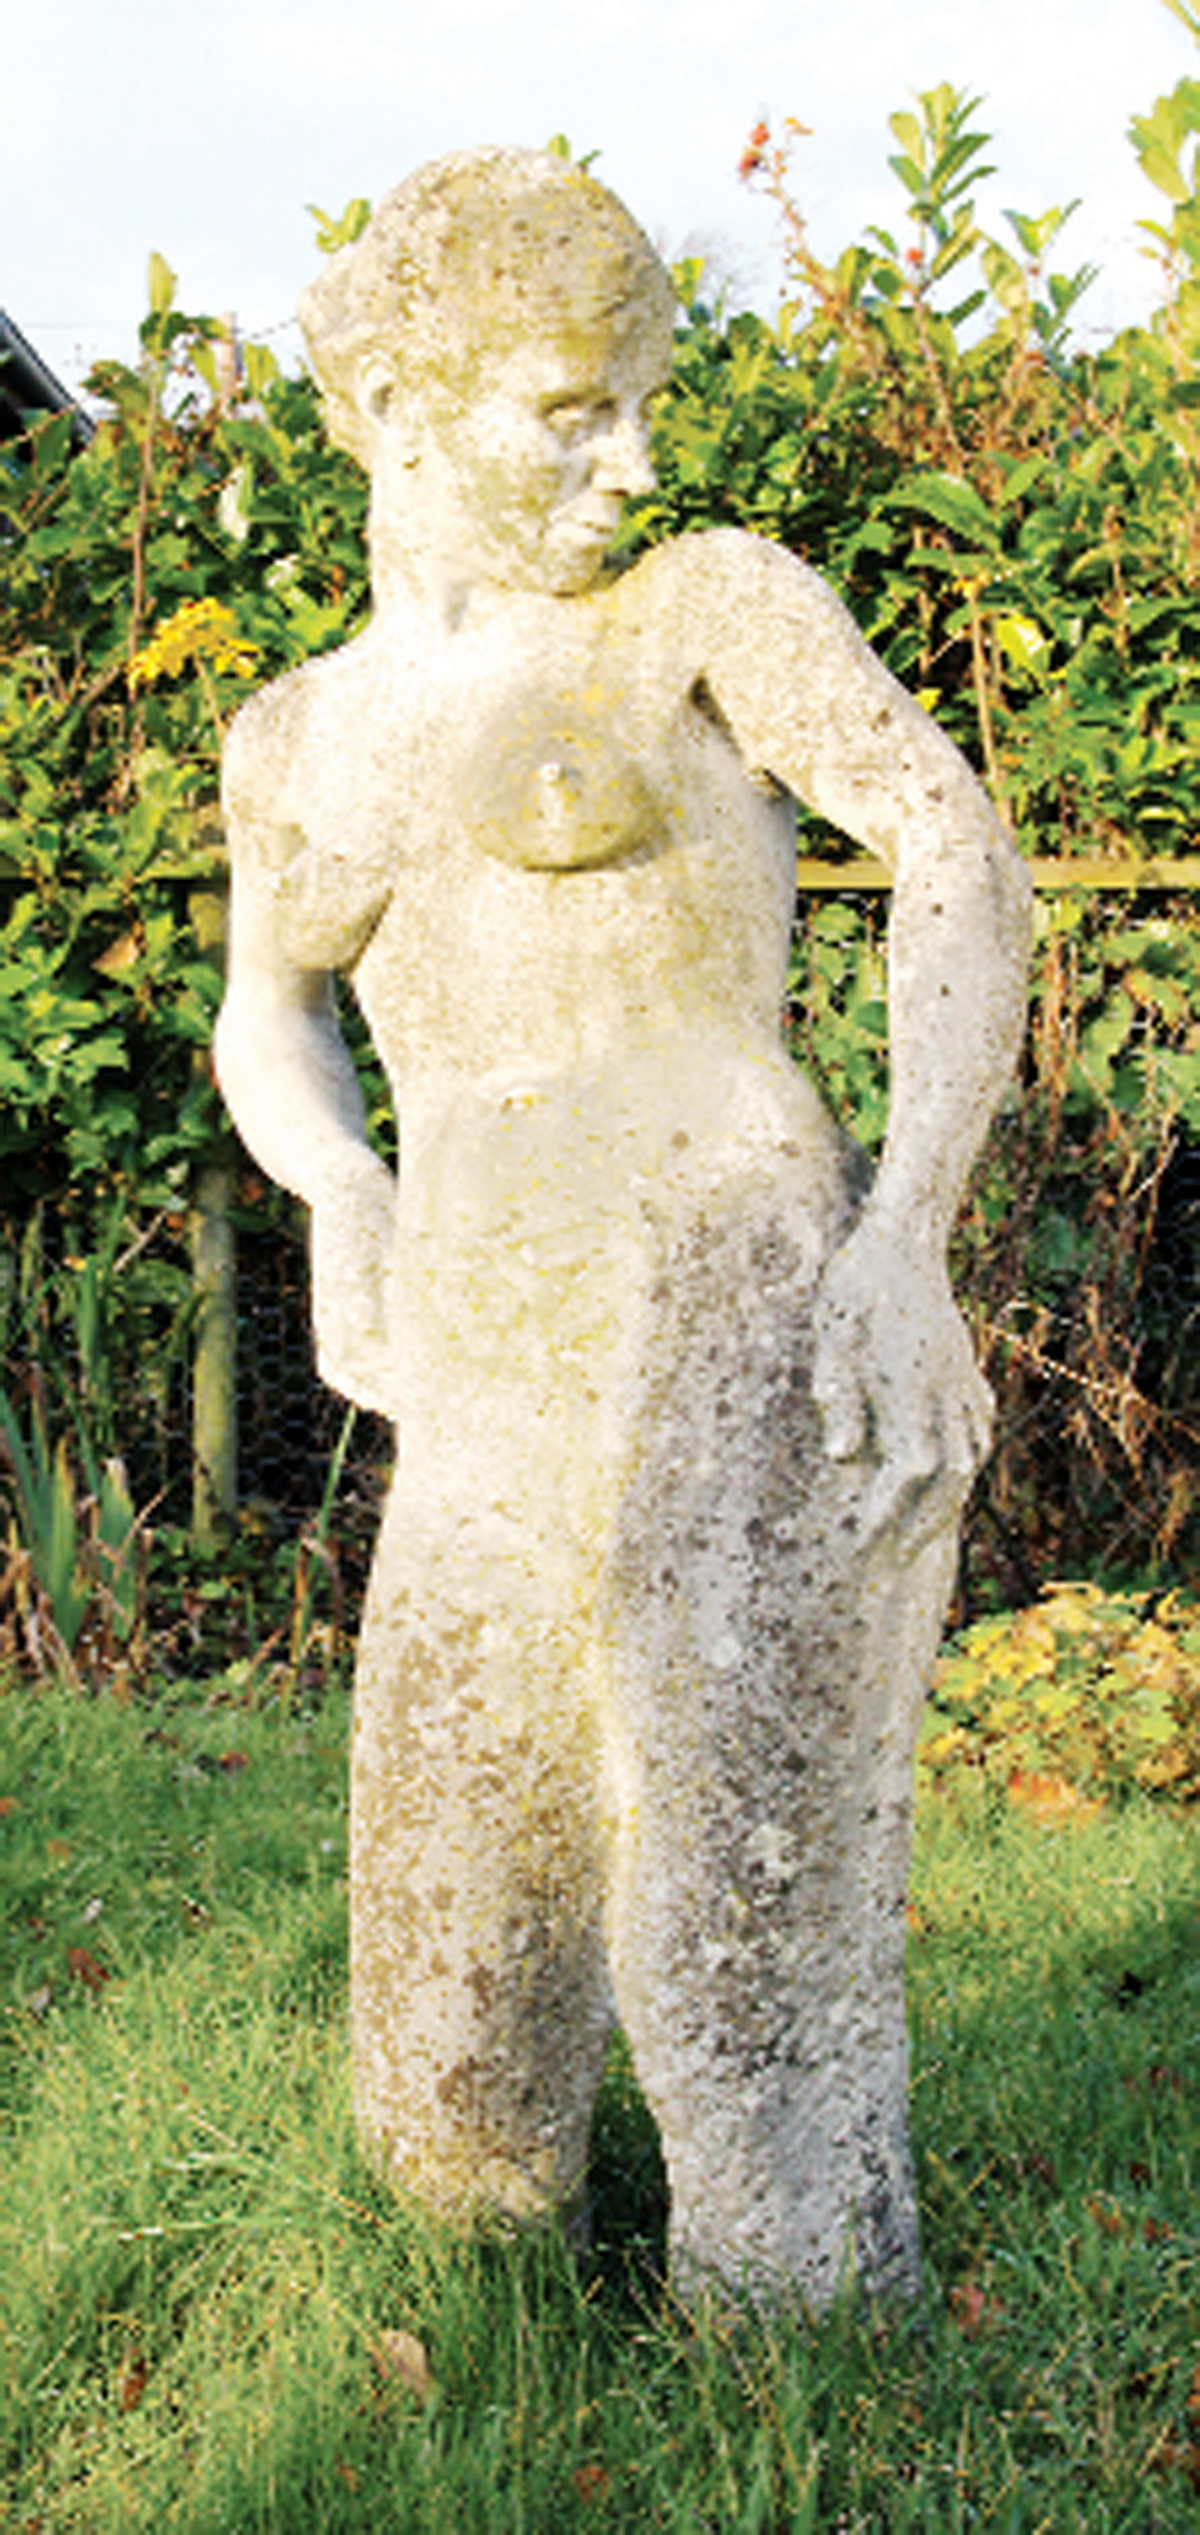 The statue depicting Jill - one of the statues that caused such a stir